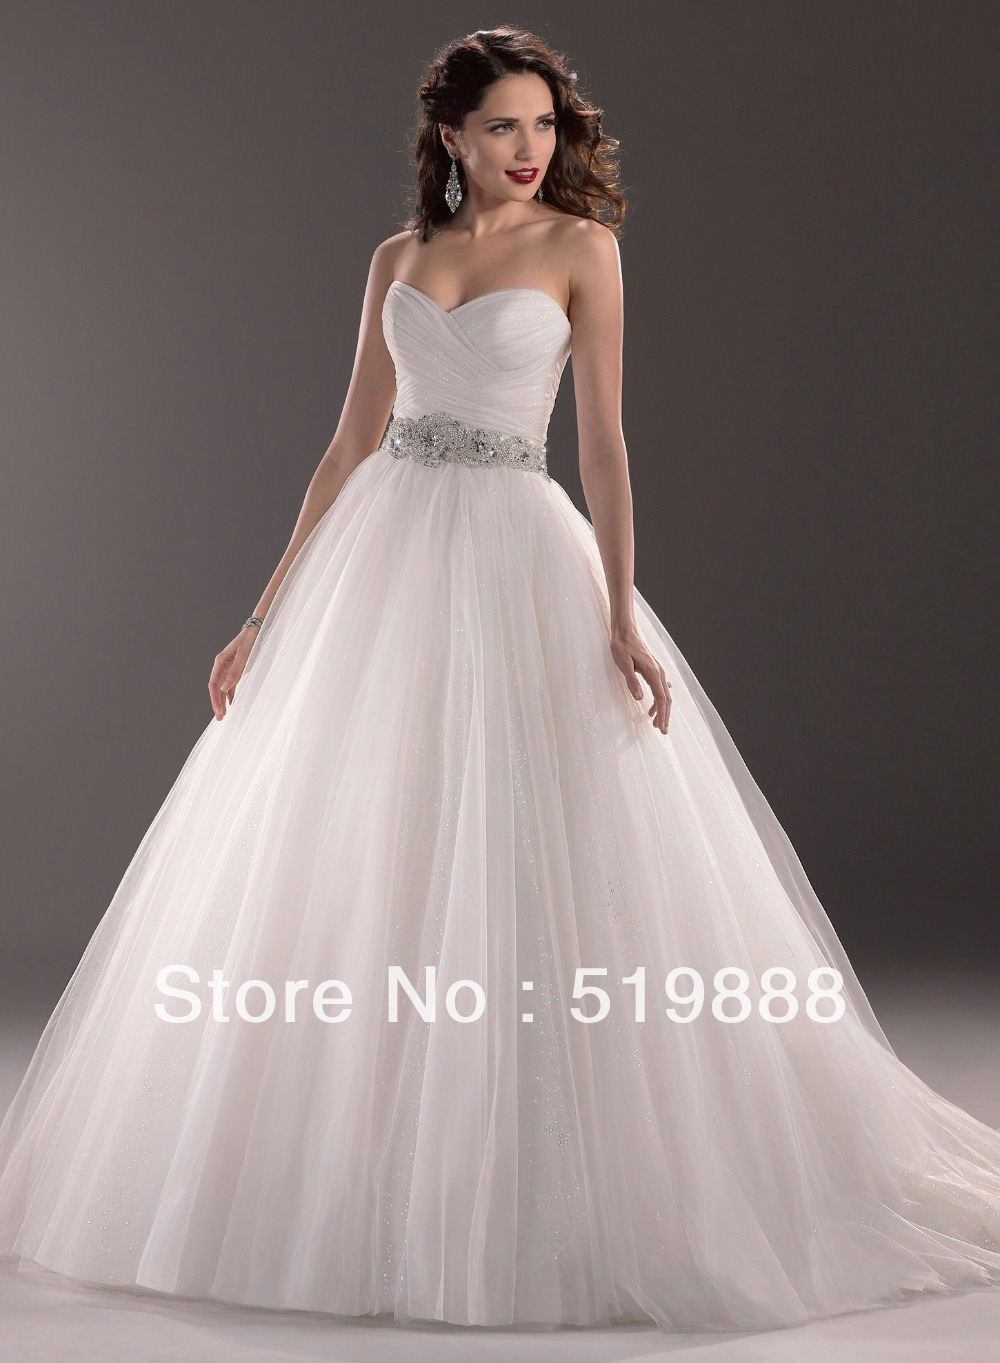 Free Shipping Hot Sale Off Shoulder Crystal Beaded Flying Ball Gown